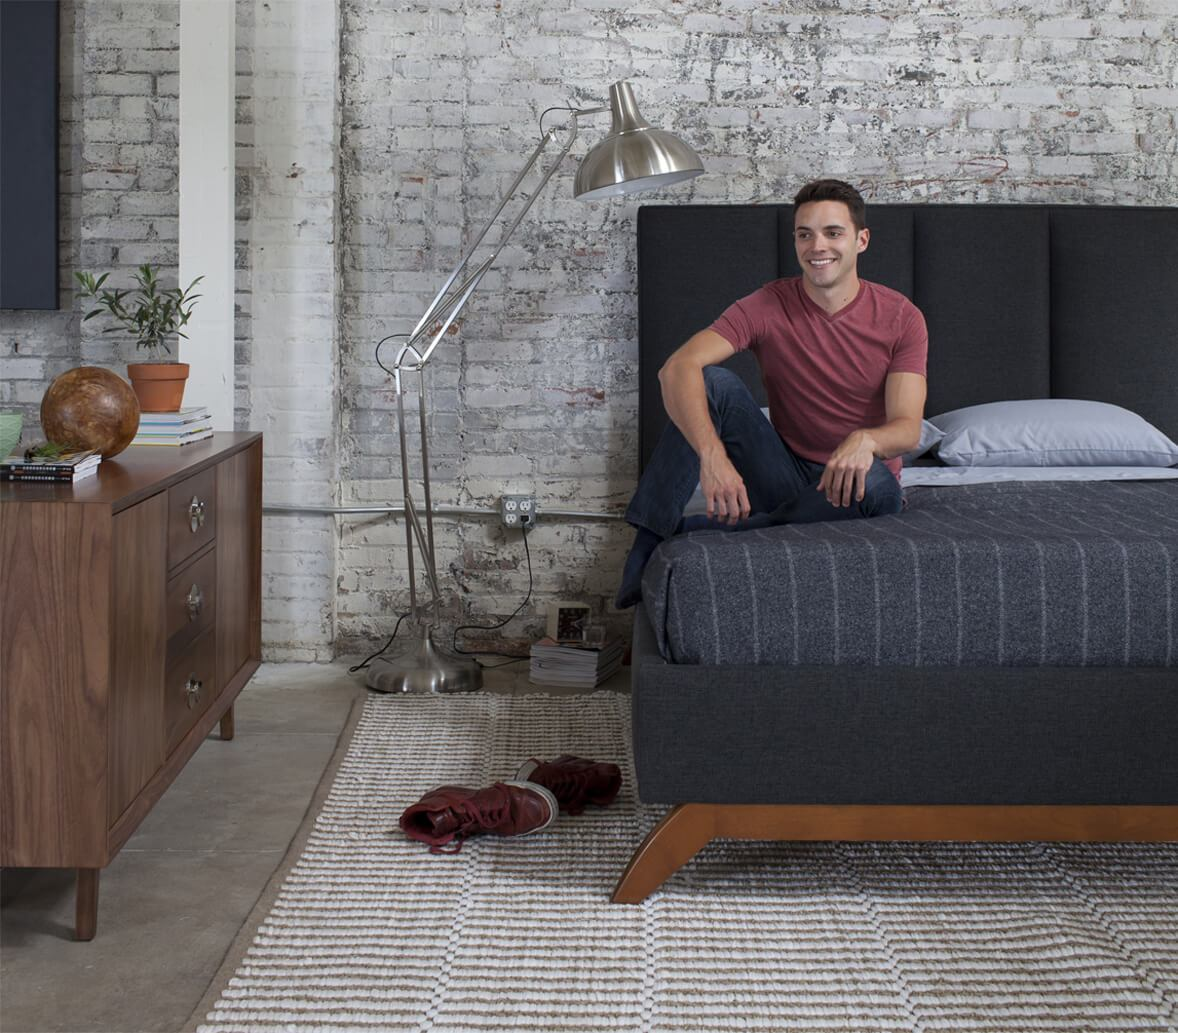 A model sits on a dark gray colored bed in a loft setting.